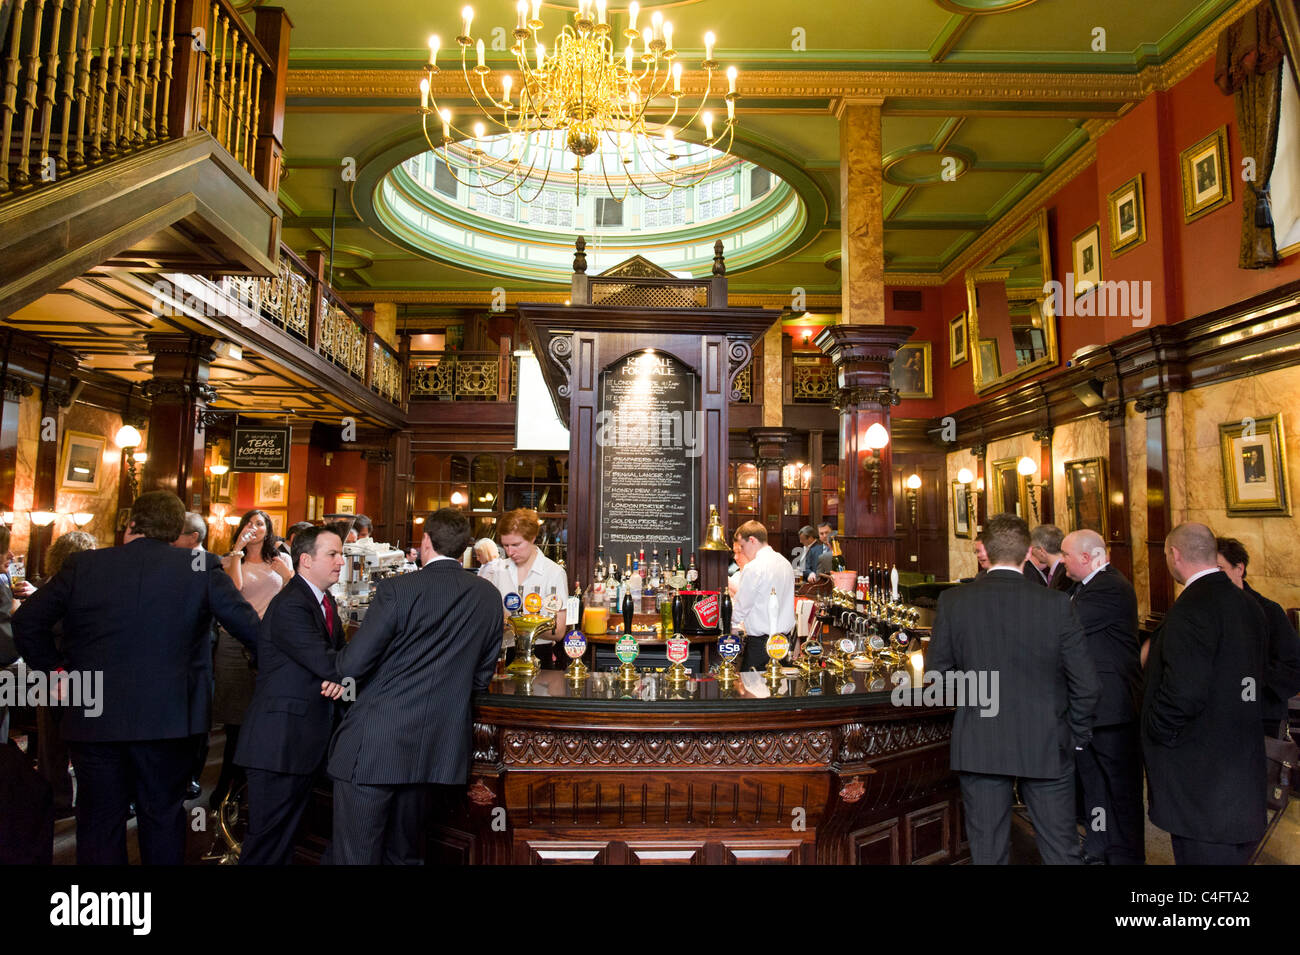 The Counting House pub in the City of London, UK - Stock Image